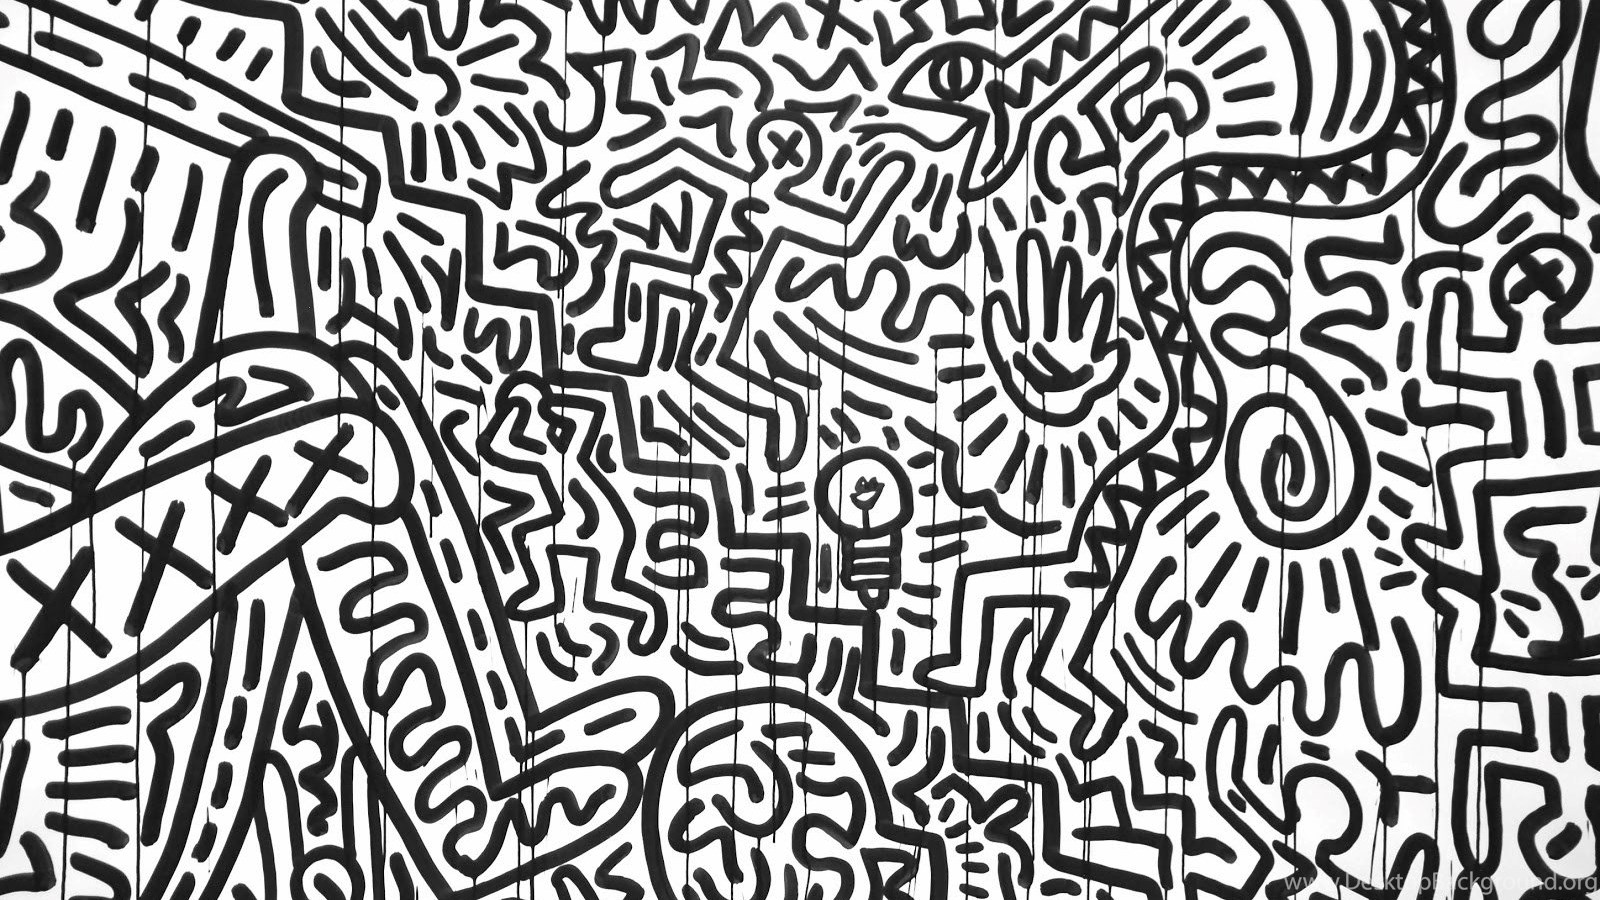 Justpict Keith Haring Black And White Wallpapers Desktop Background